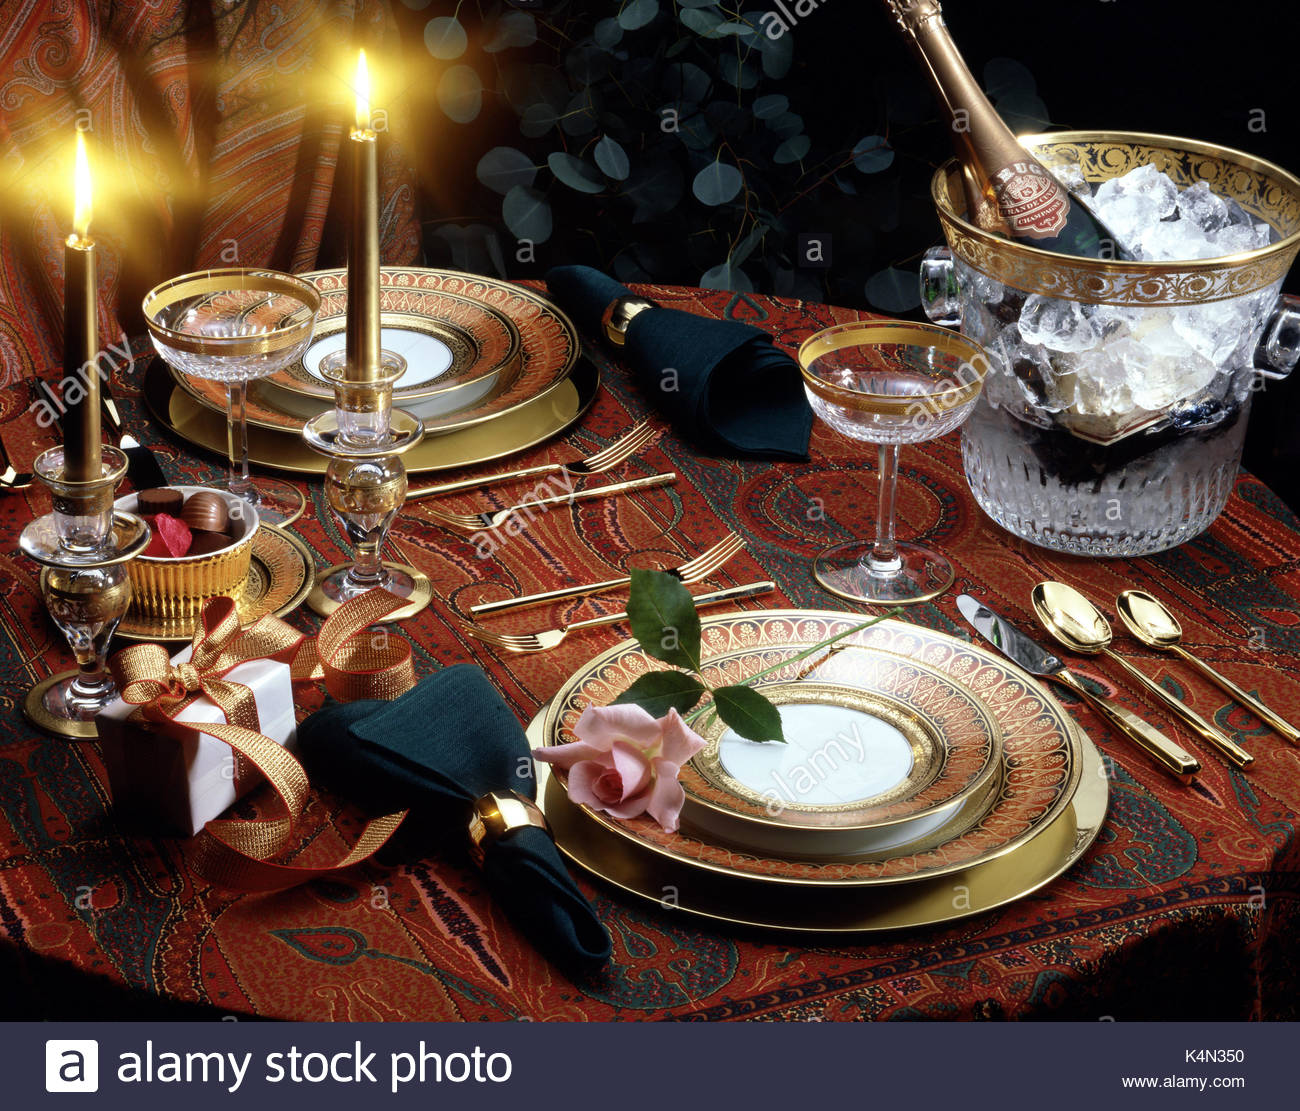 ROMANTIC TABLE SETTING FOR TWO & ROMANTIC TABLE SETTING FOR TWO Stock Photo: 157815420 - Alamy